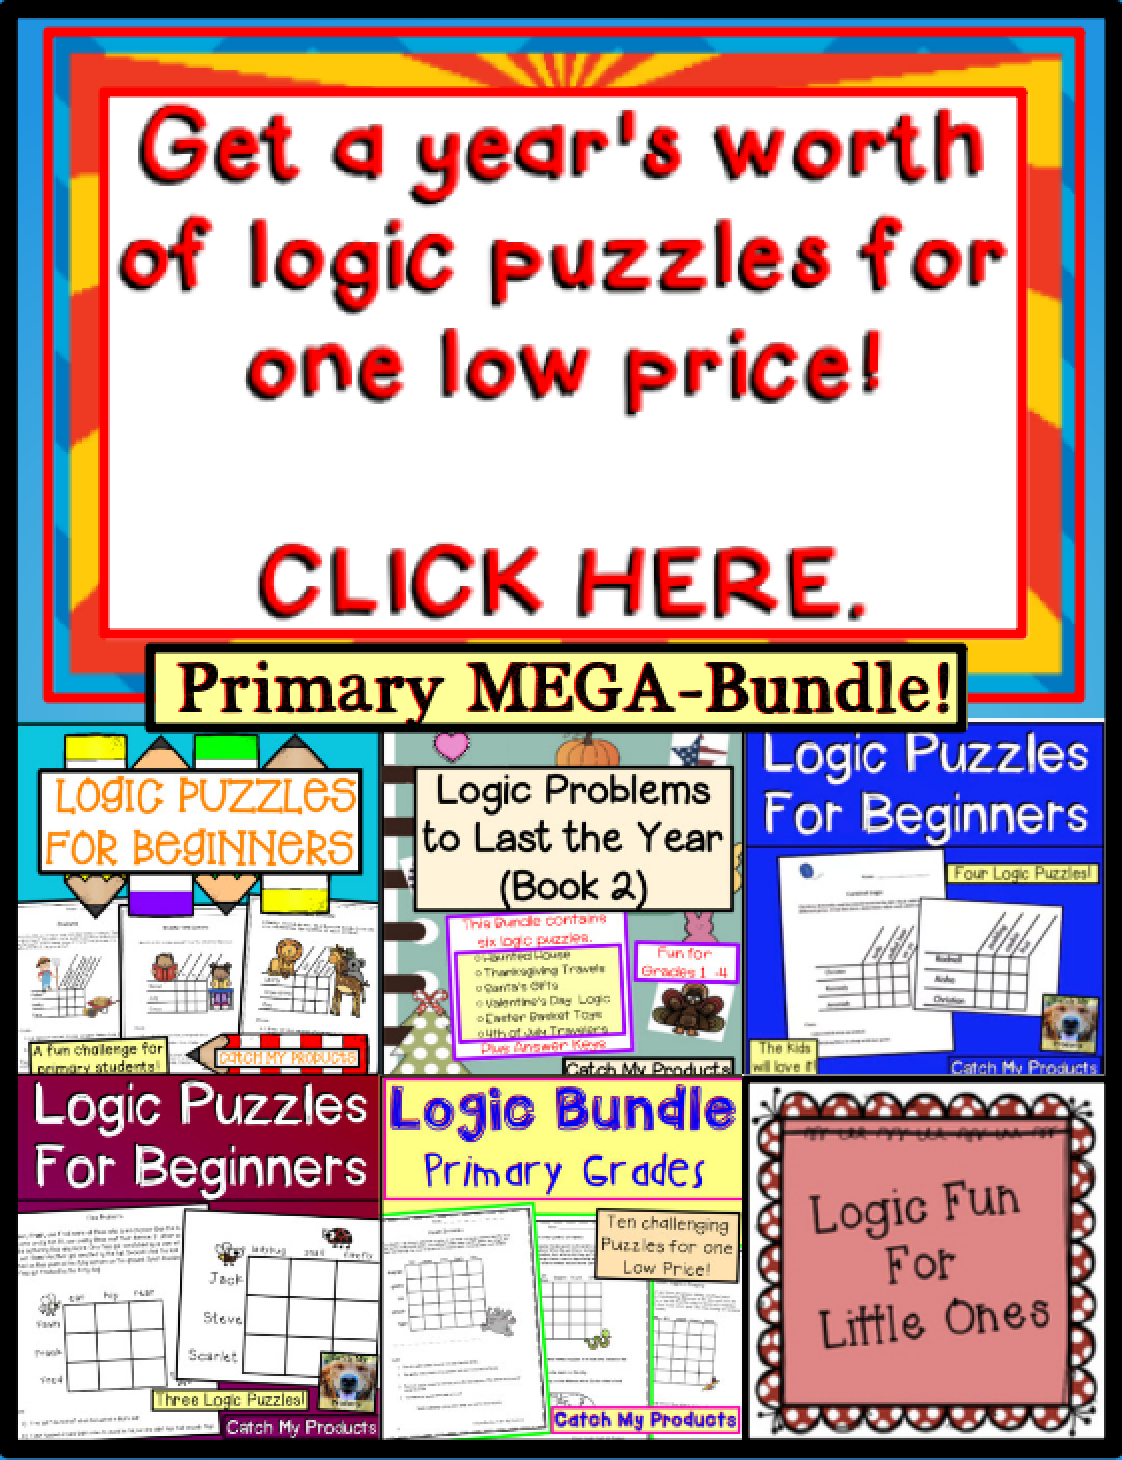 Primary Printable Logic Puzzle Worksheets For Kids Will Provide Hard Critical Thinking Challenges With Answers An Logic Puzzles Brain Teasers Critical Thinking [ 1460 x 1122 Pixel ]